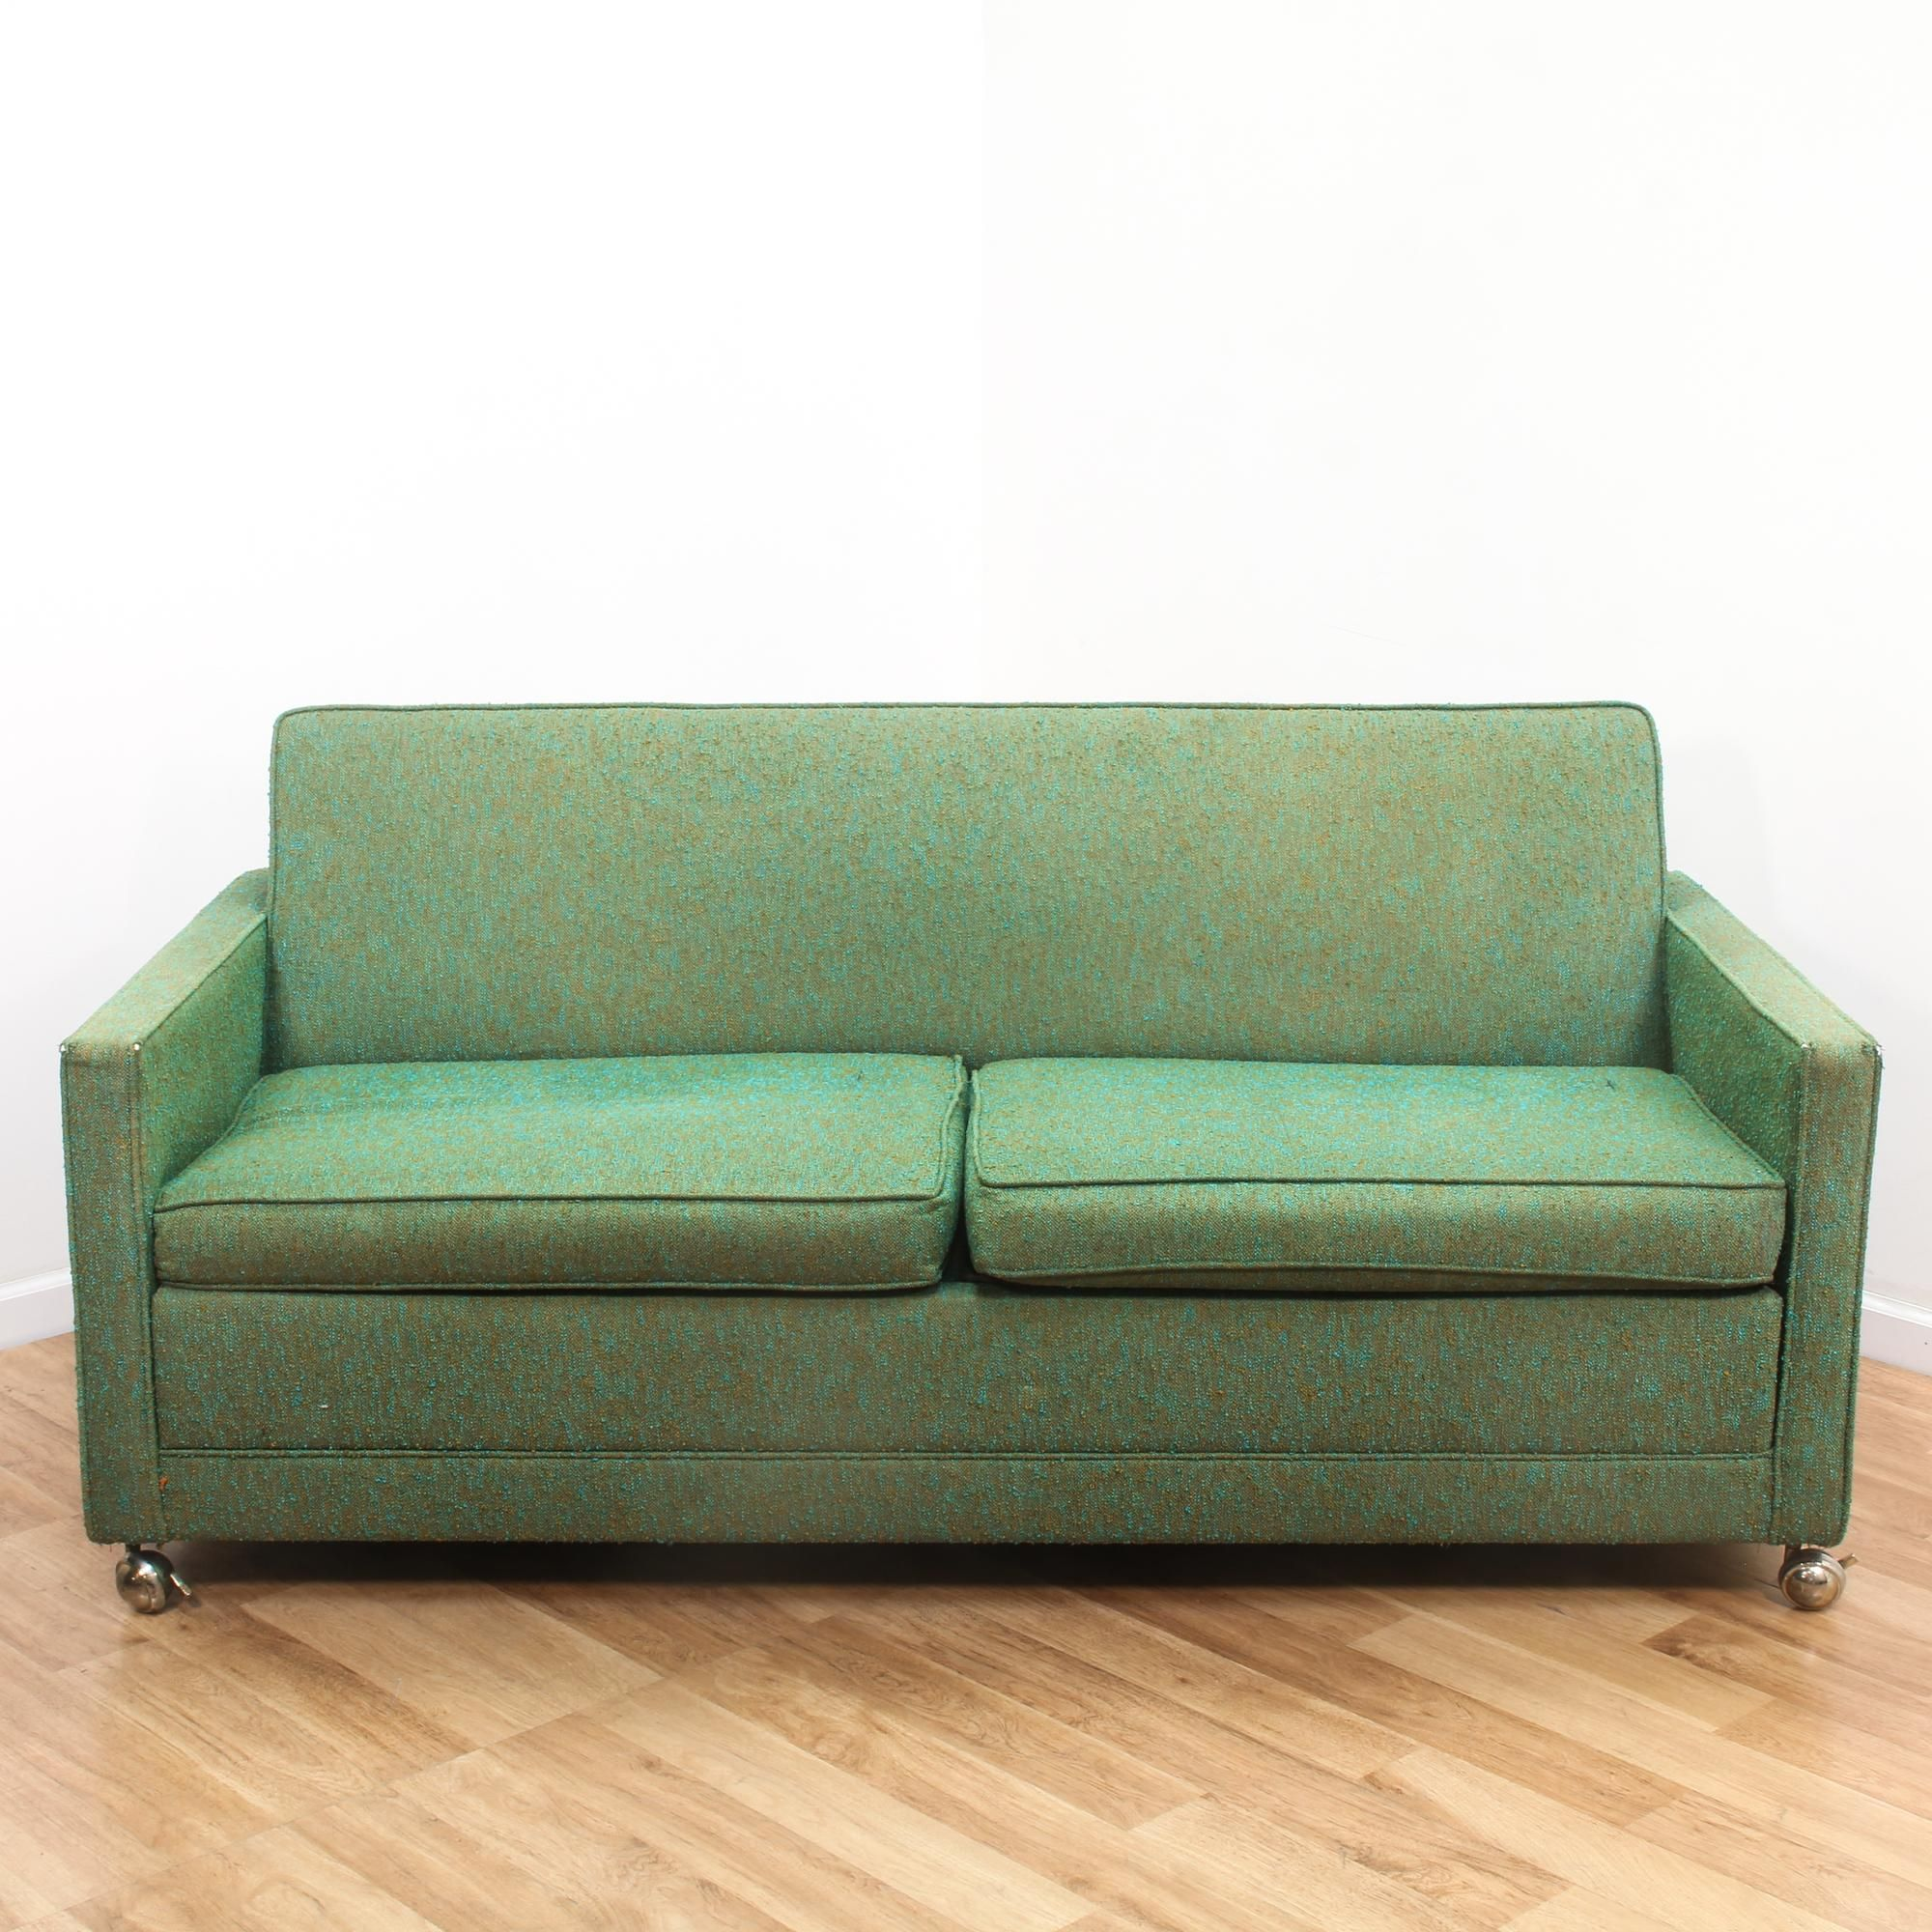 Woven Green Mid Century Modern Sleeper Sofa Modern Sleeper Sofa